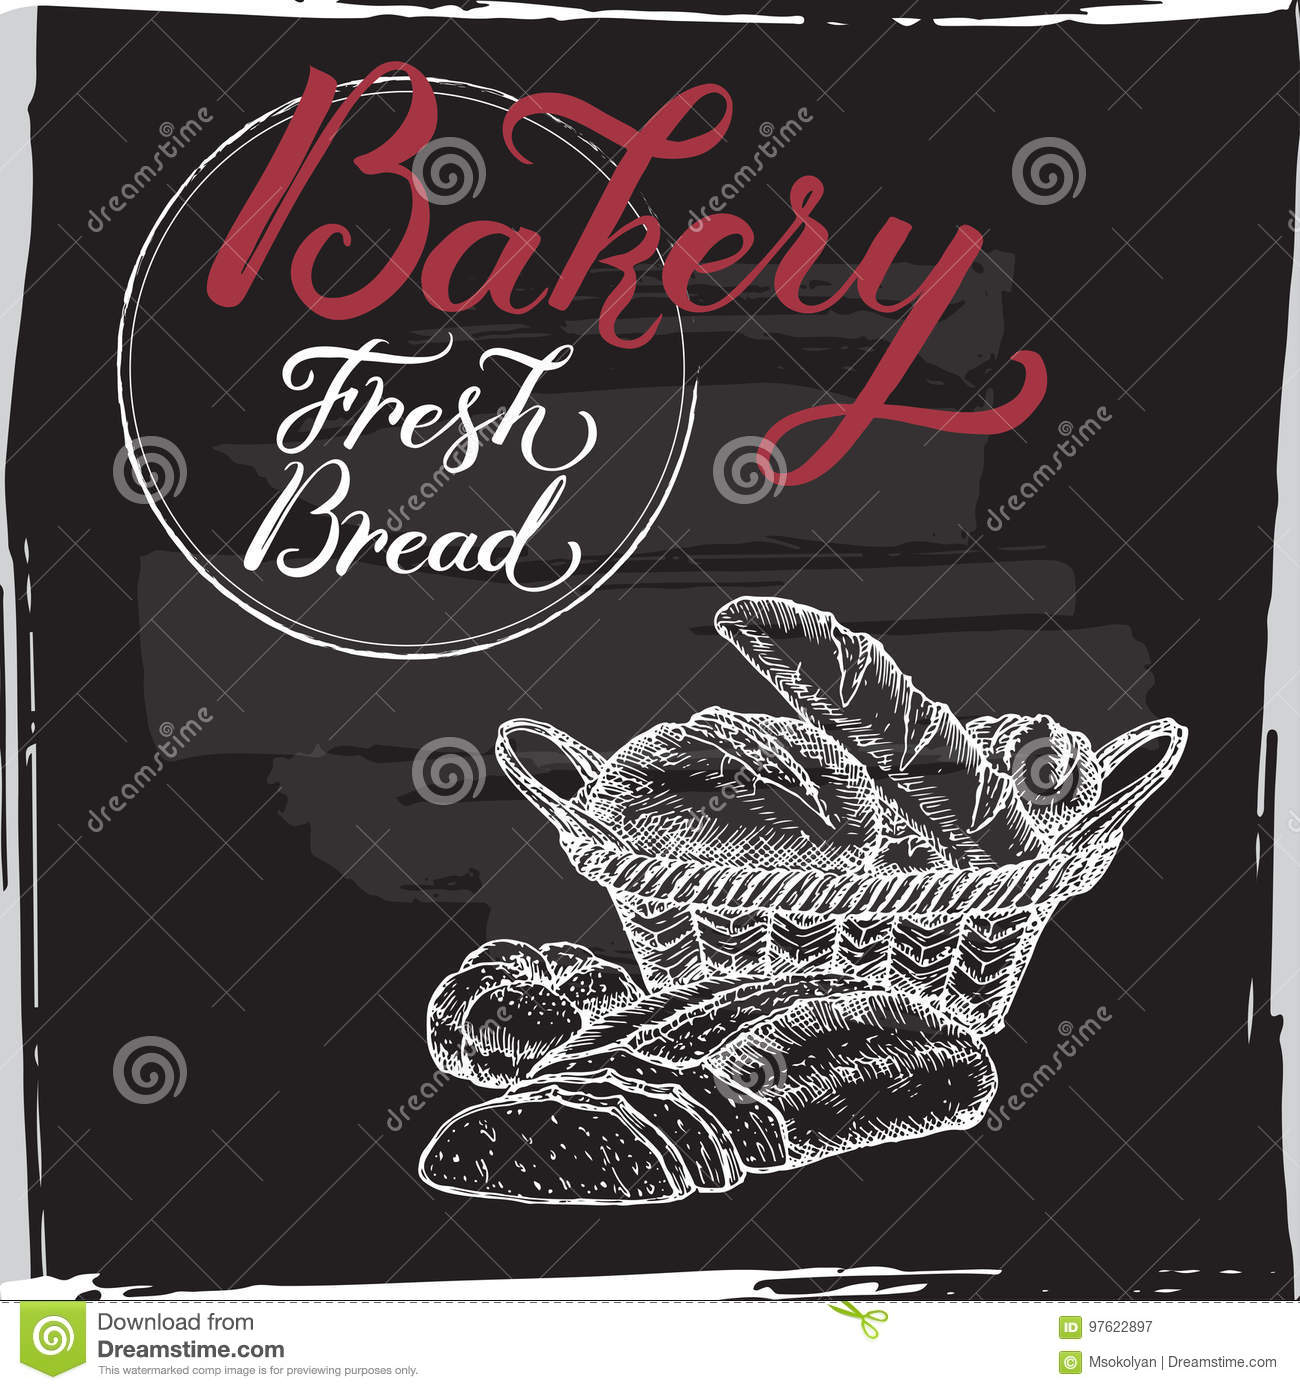 Bakery Template With Hand Lettering On Black Background Stock Vector ...